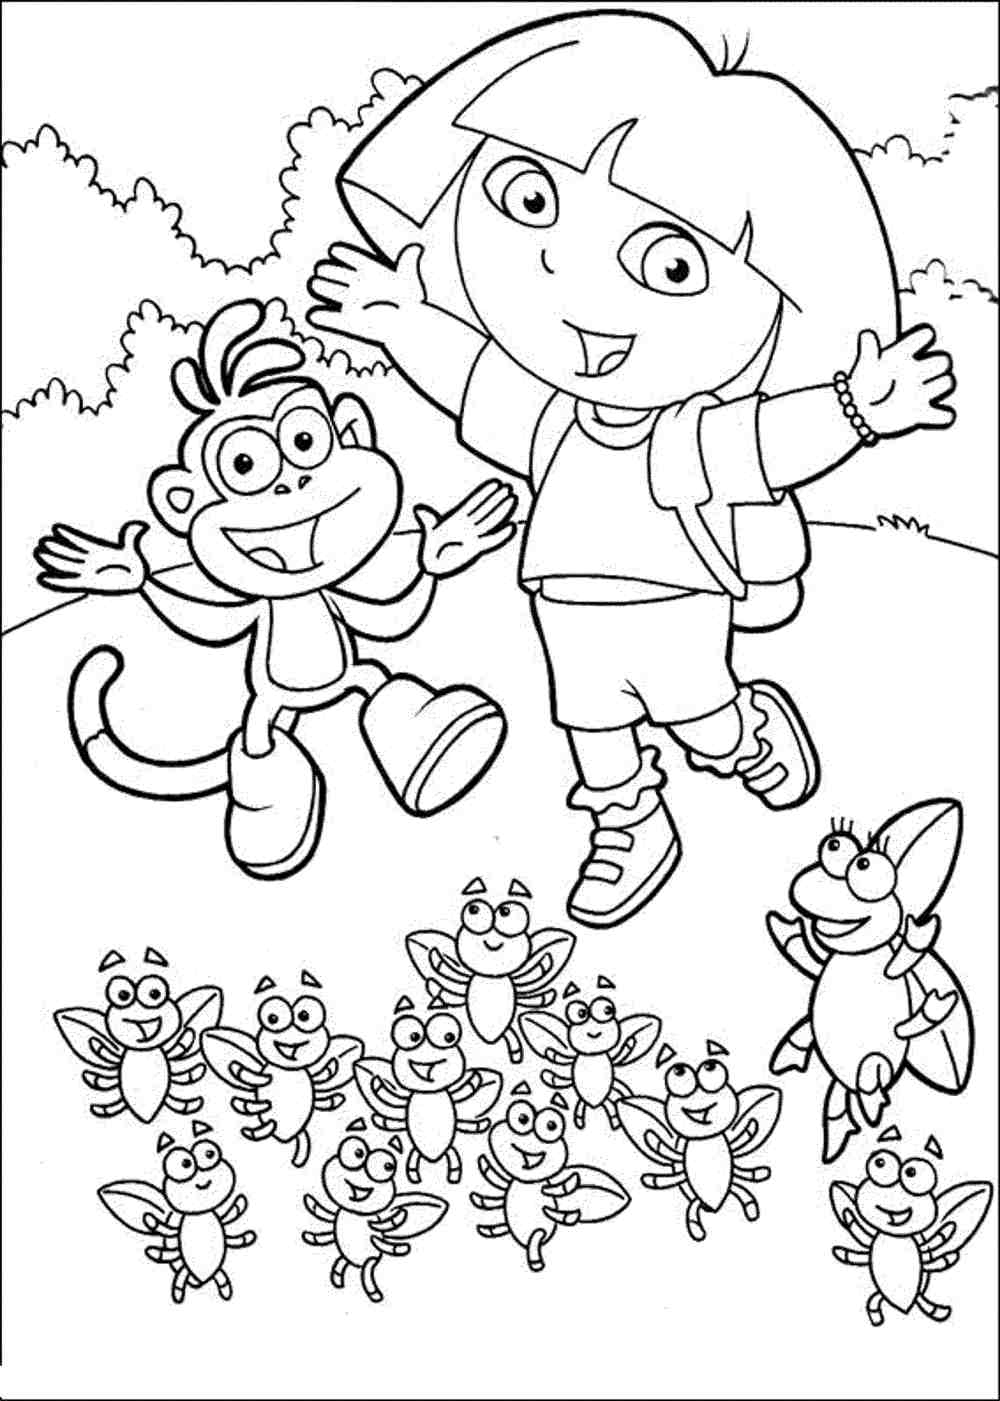 dora colouring dora the explorer coloring pages learny kids colouring dora